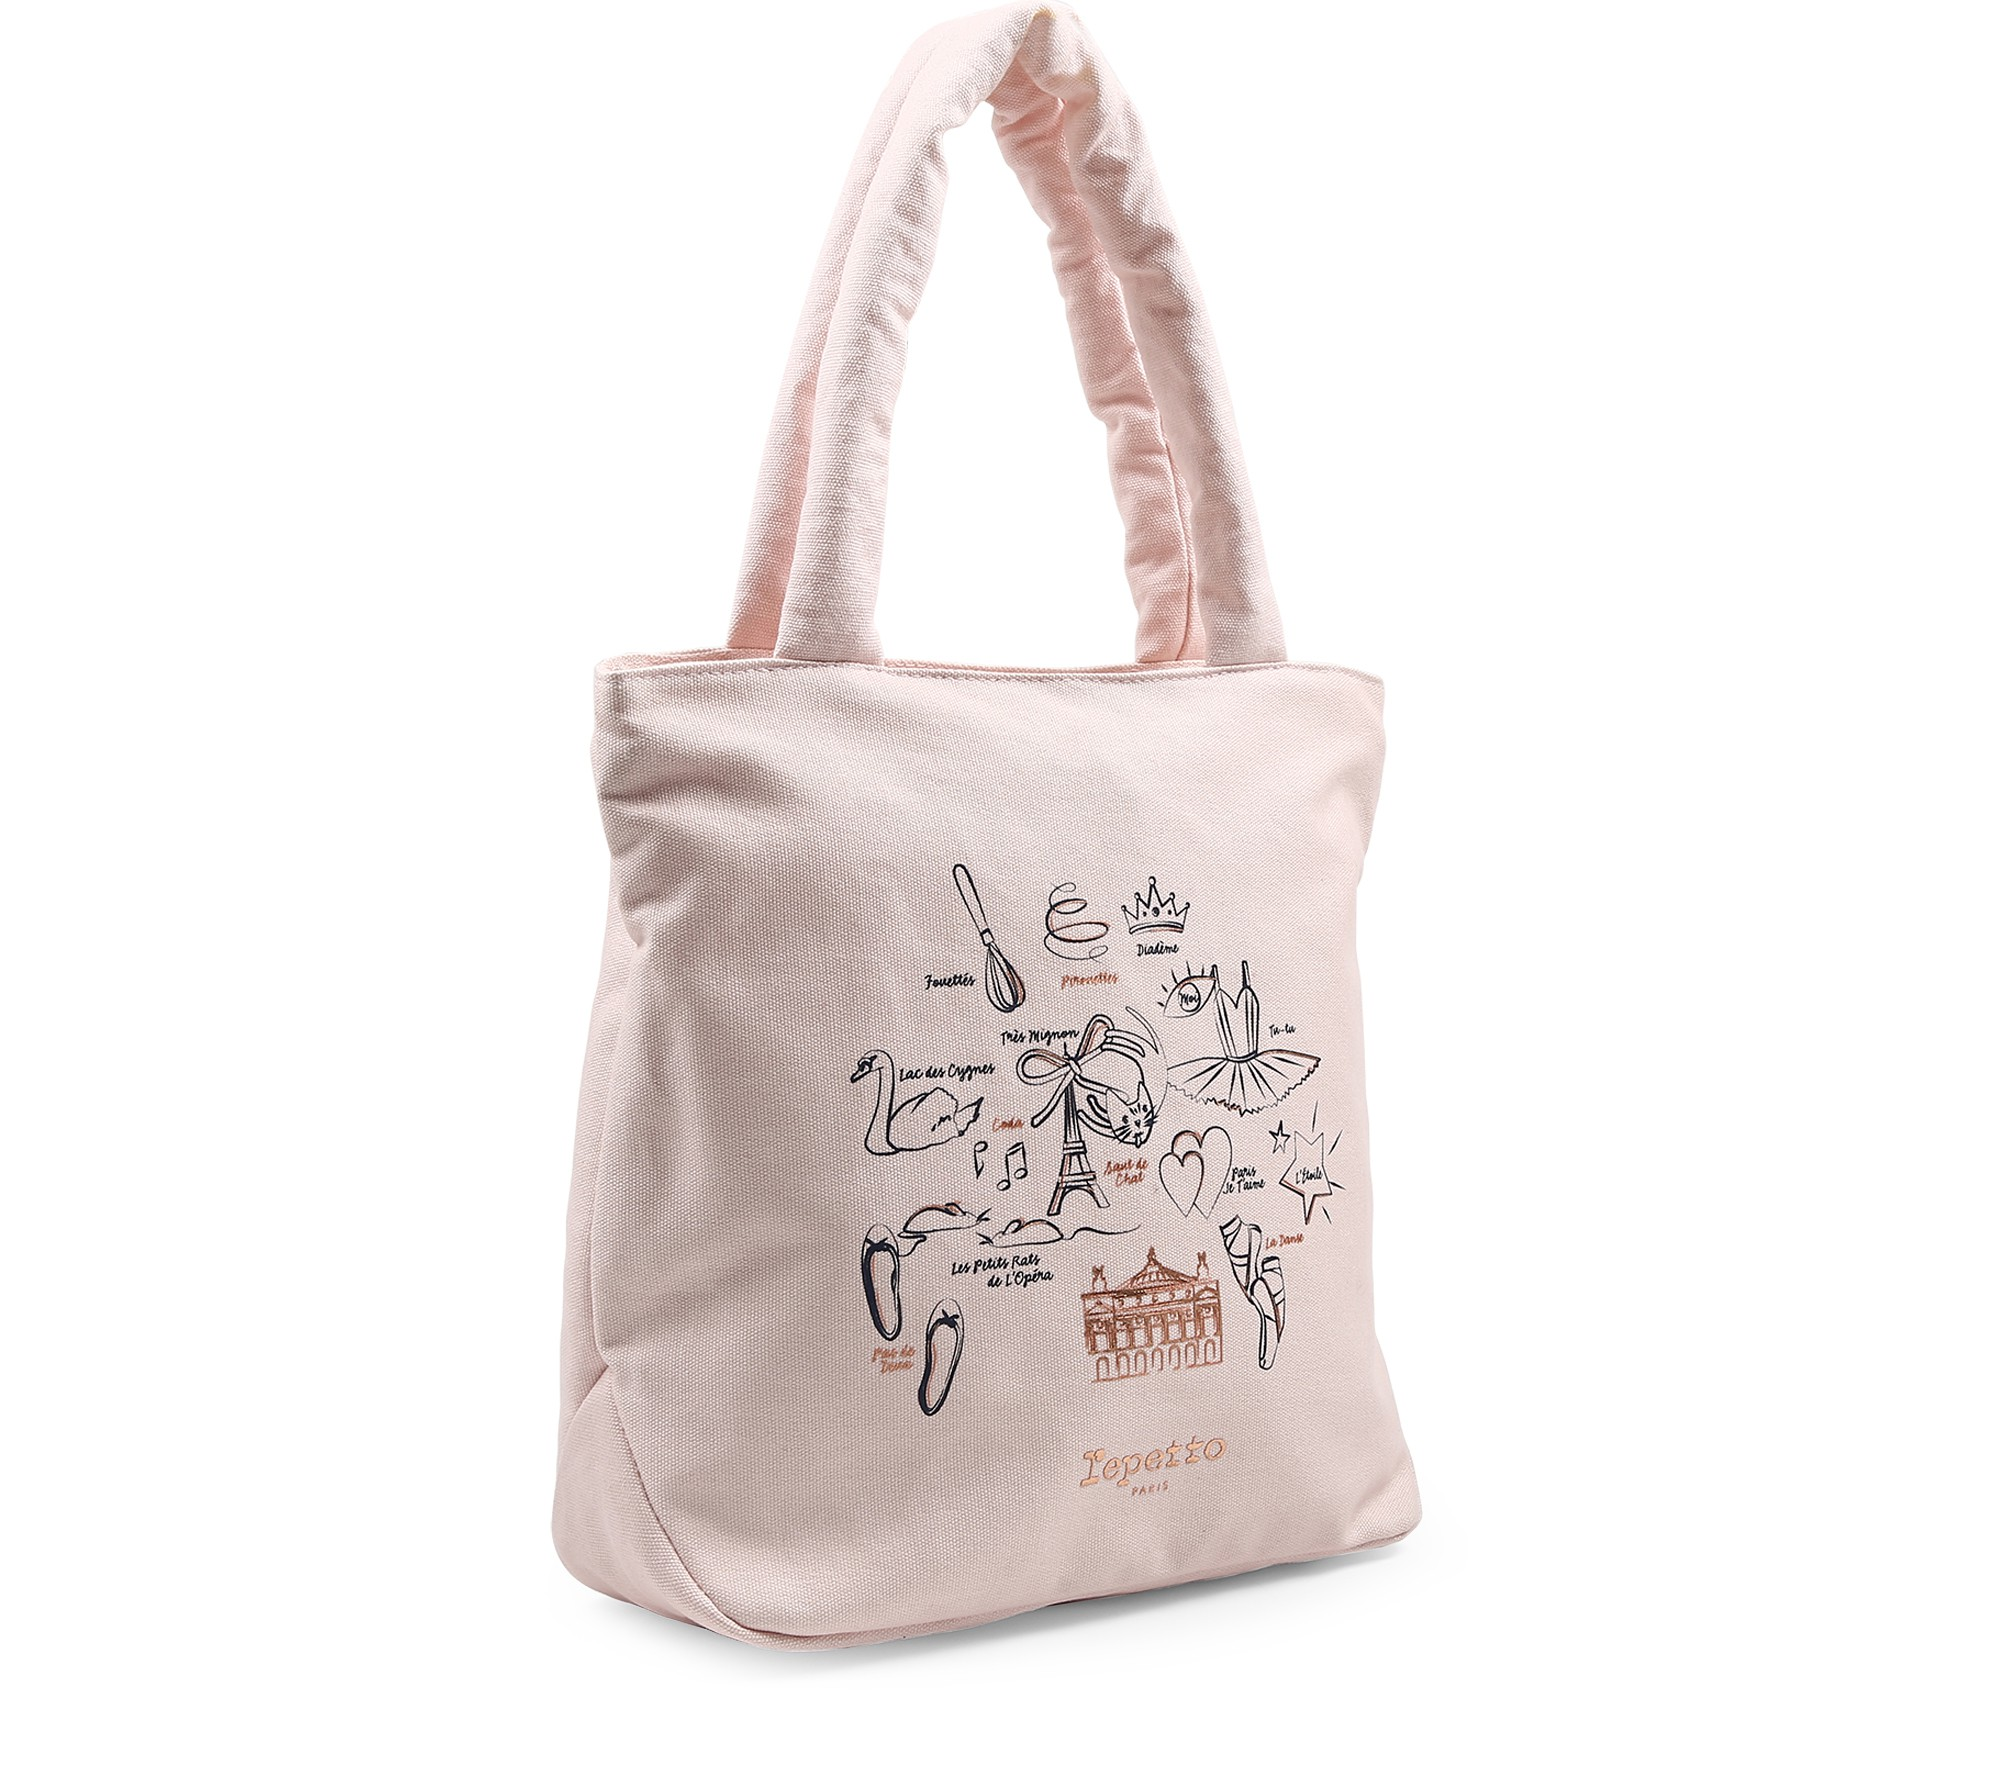 Scene girl shoulder bag